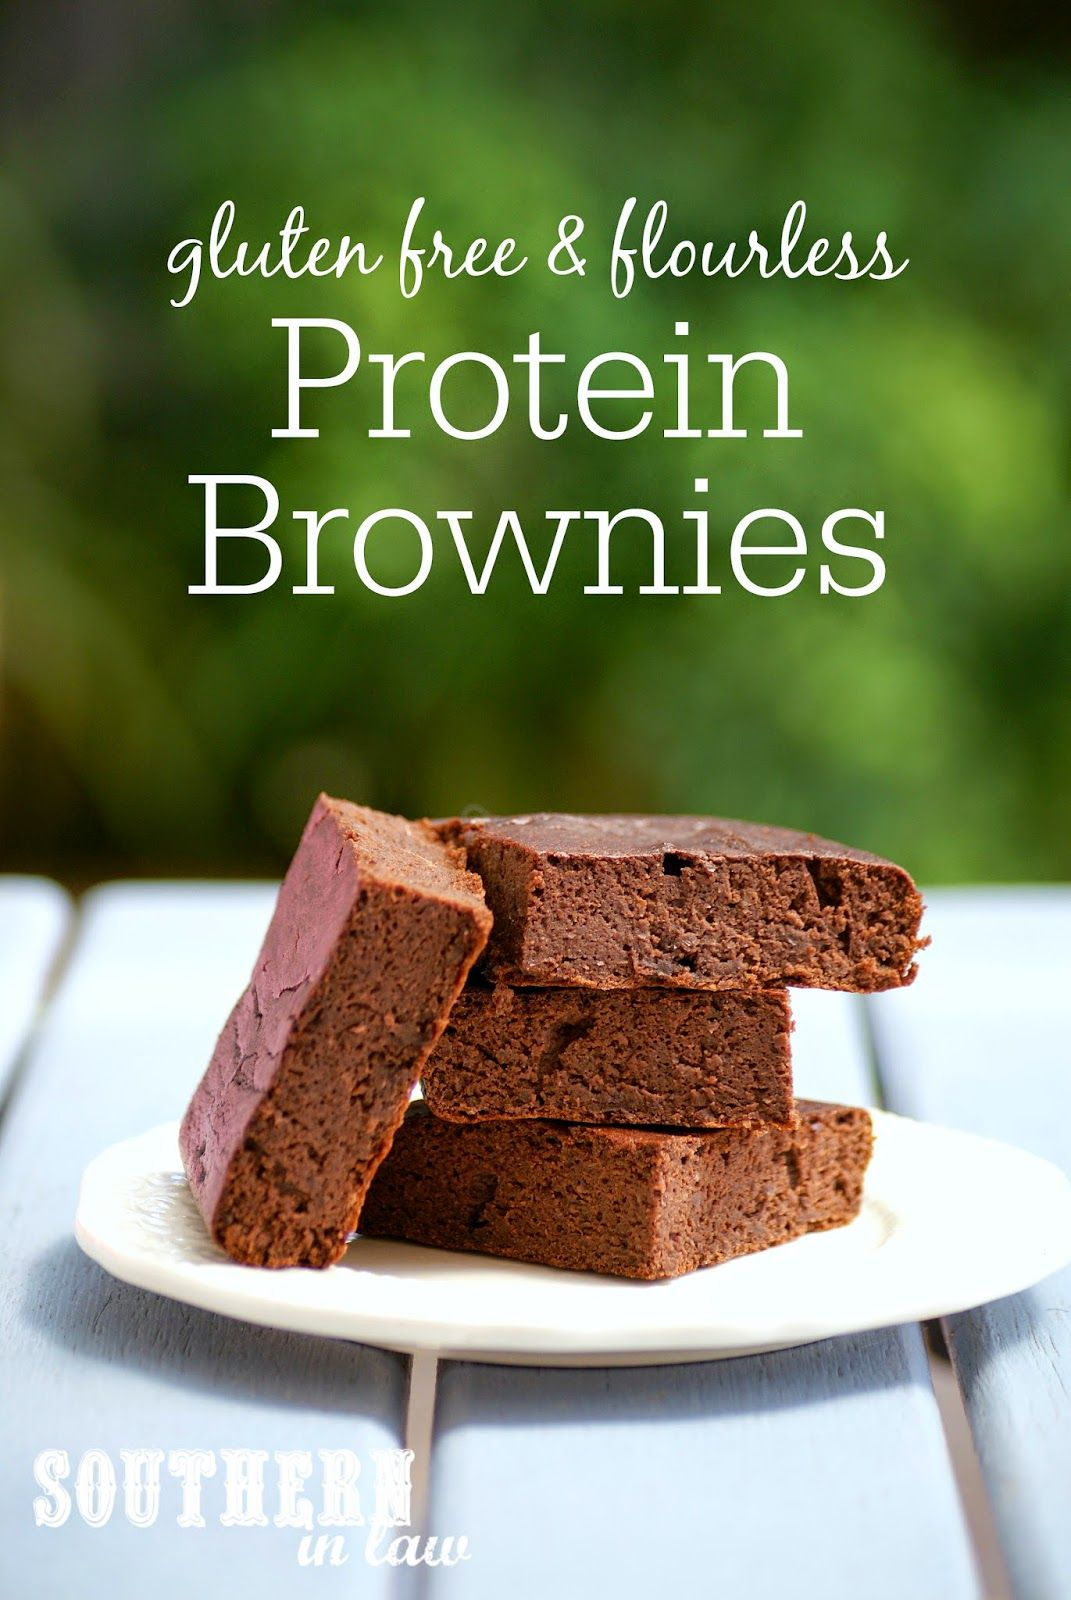 Low Carb Protein Kuchen Recipe Healthy Flourless Protein Brownies Eat Drink Be